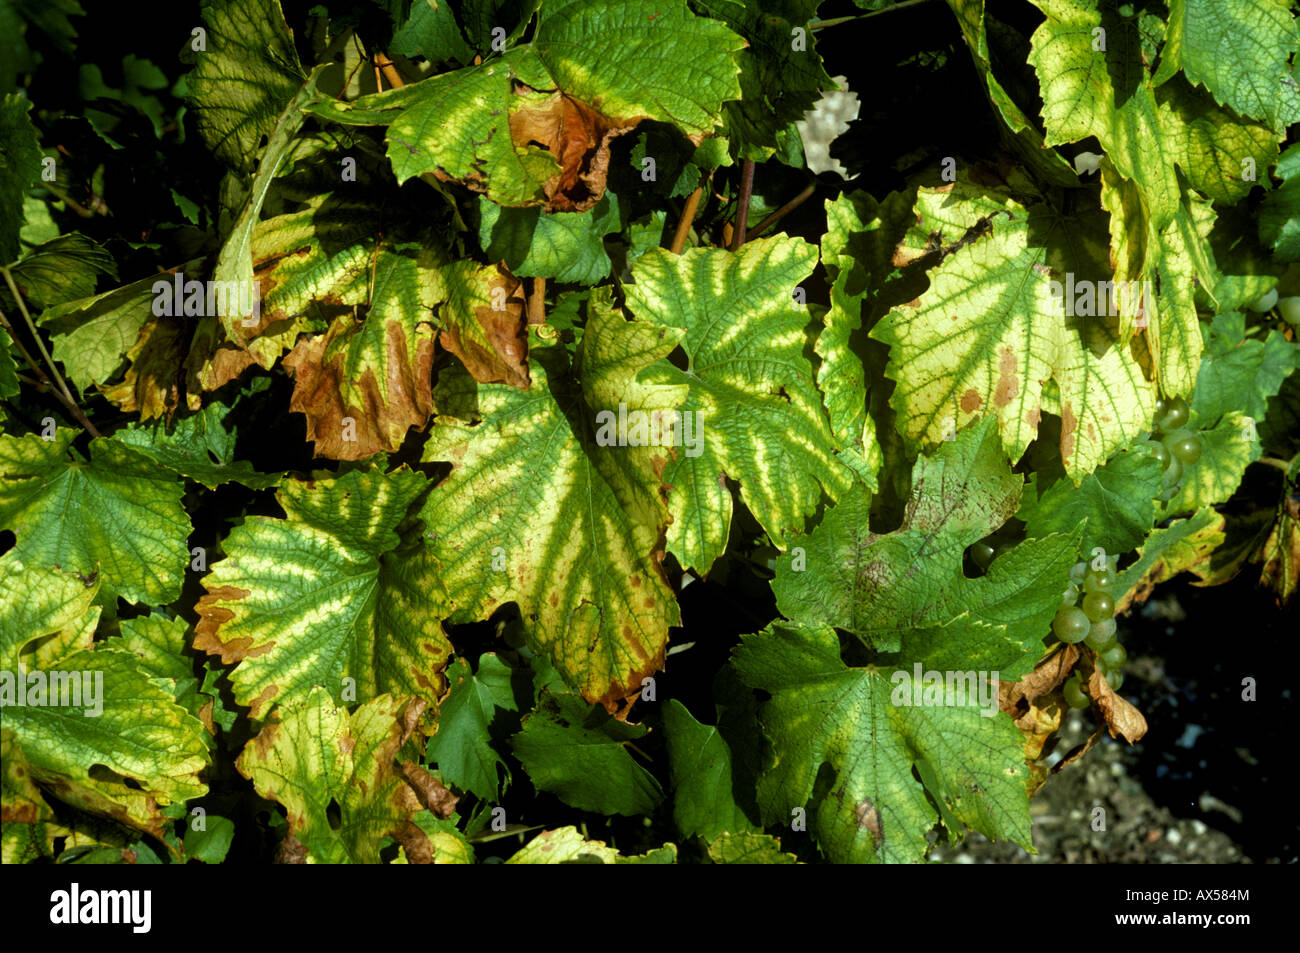 Magnesium deficiency symptoms on Chardonnay grapevine leaves Stock Photo